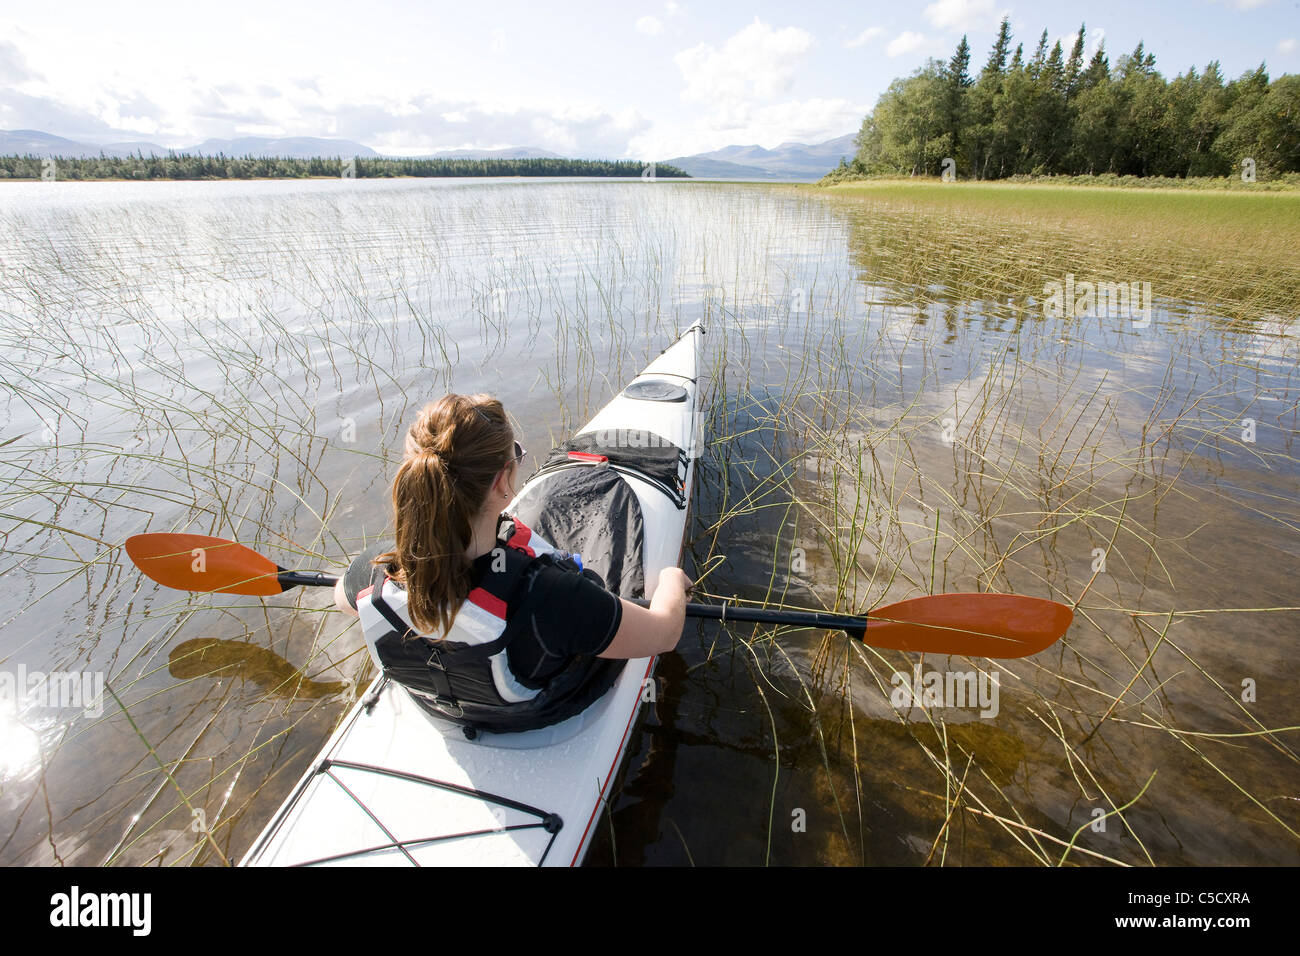 Rear view of a woman kayaking in the peaceful lake - Stock Image